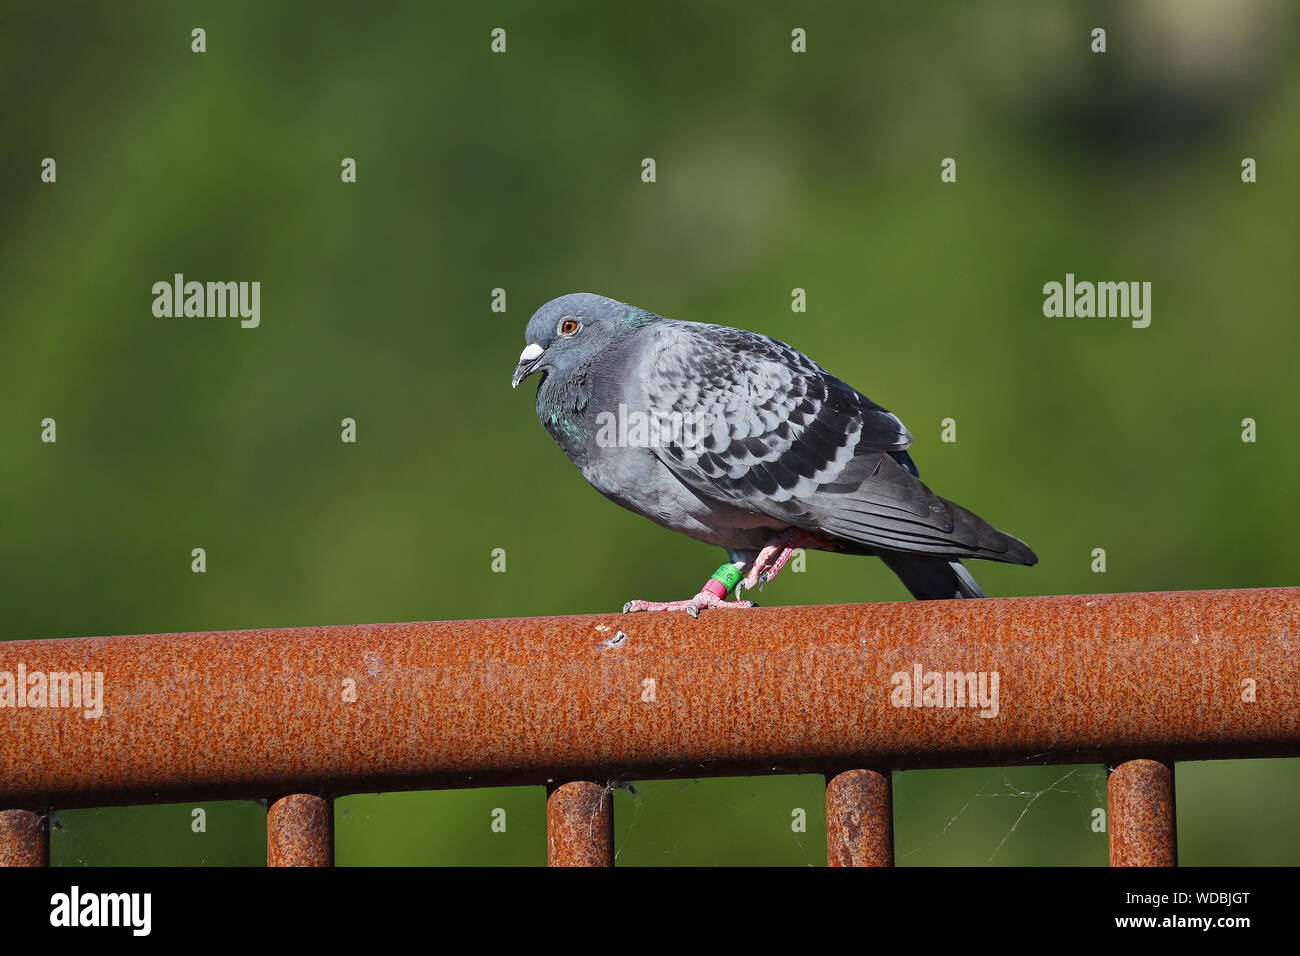 homing pigeon, racing pigeon or domestic messenger pigeon Latin columba livia domestica taking a rest from its long flight in Italy tags very visible Stock Photo